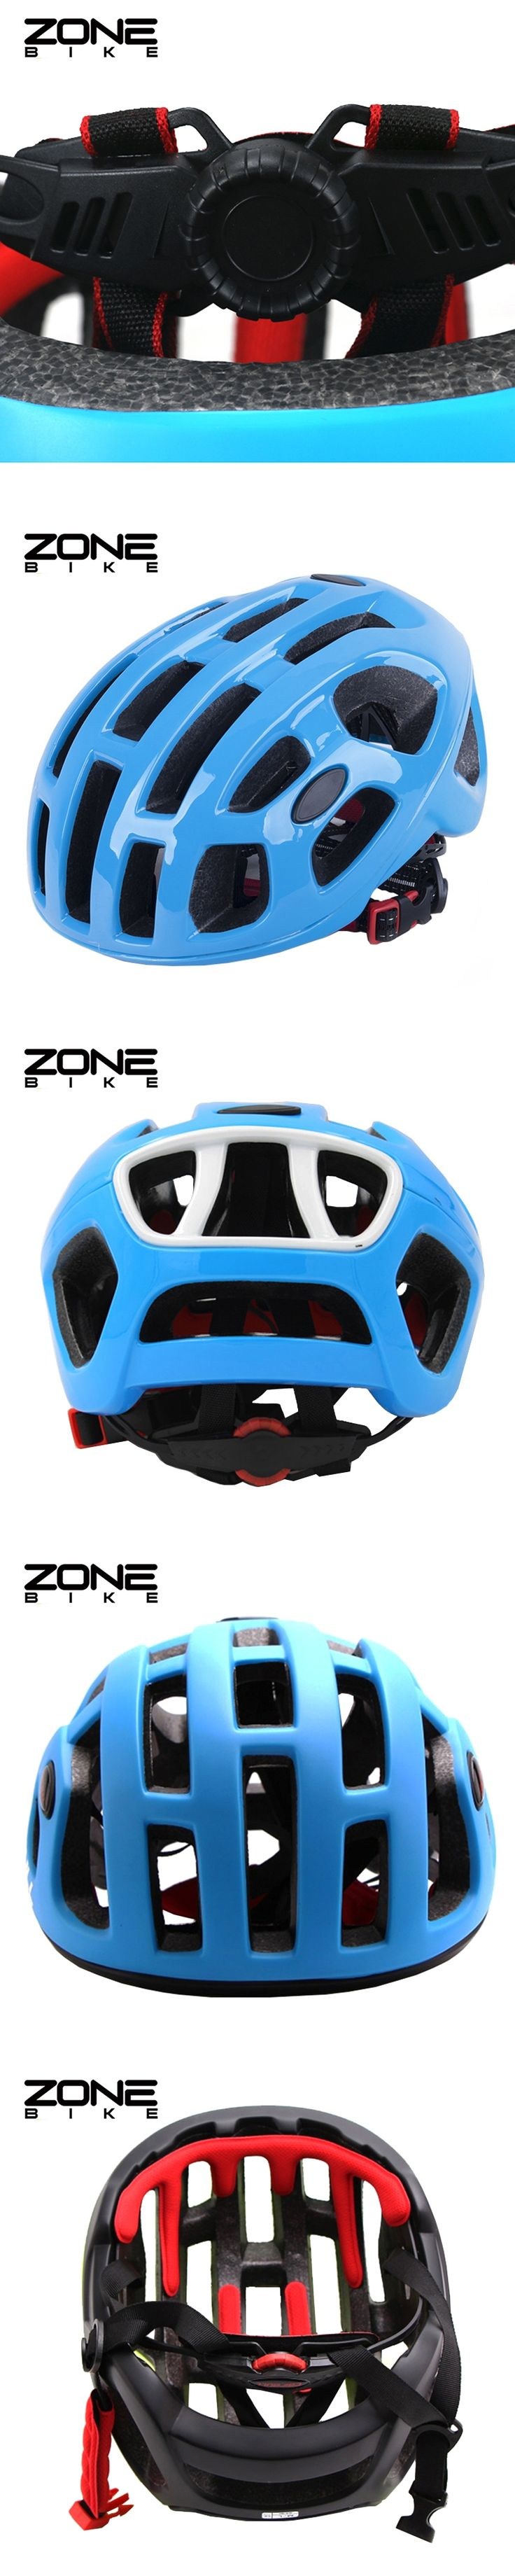 ZONEBIKE EPS Cycling Helmet Bicycle Bike Capacete Casco Ciclismo Mtb Casque Velo Route Bisiklet Kask Head Circumference 56-62cm